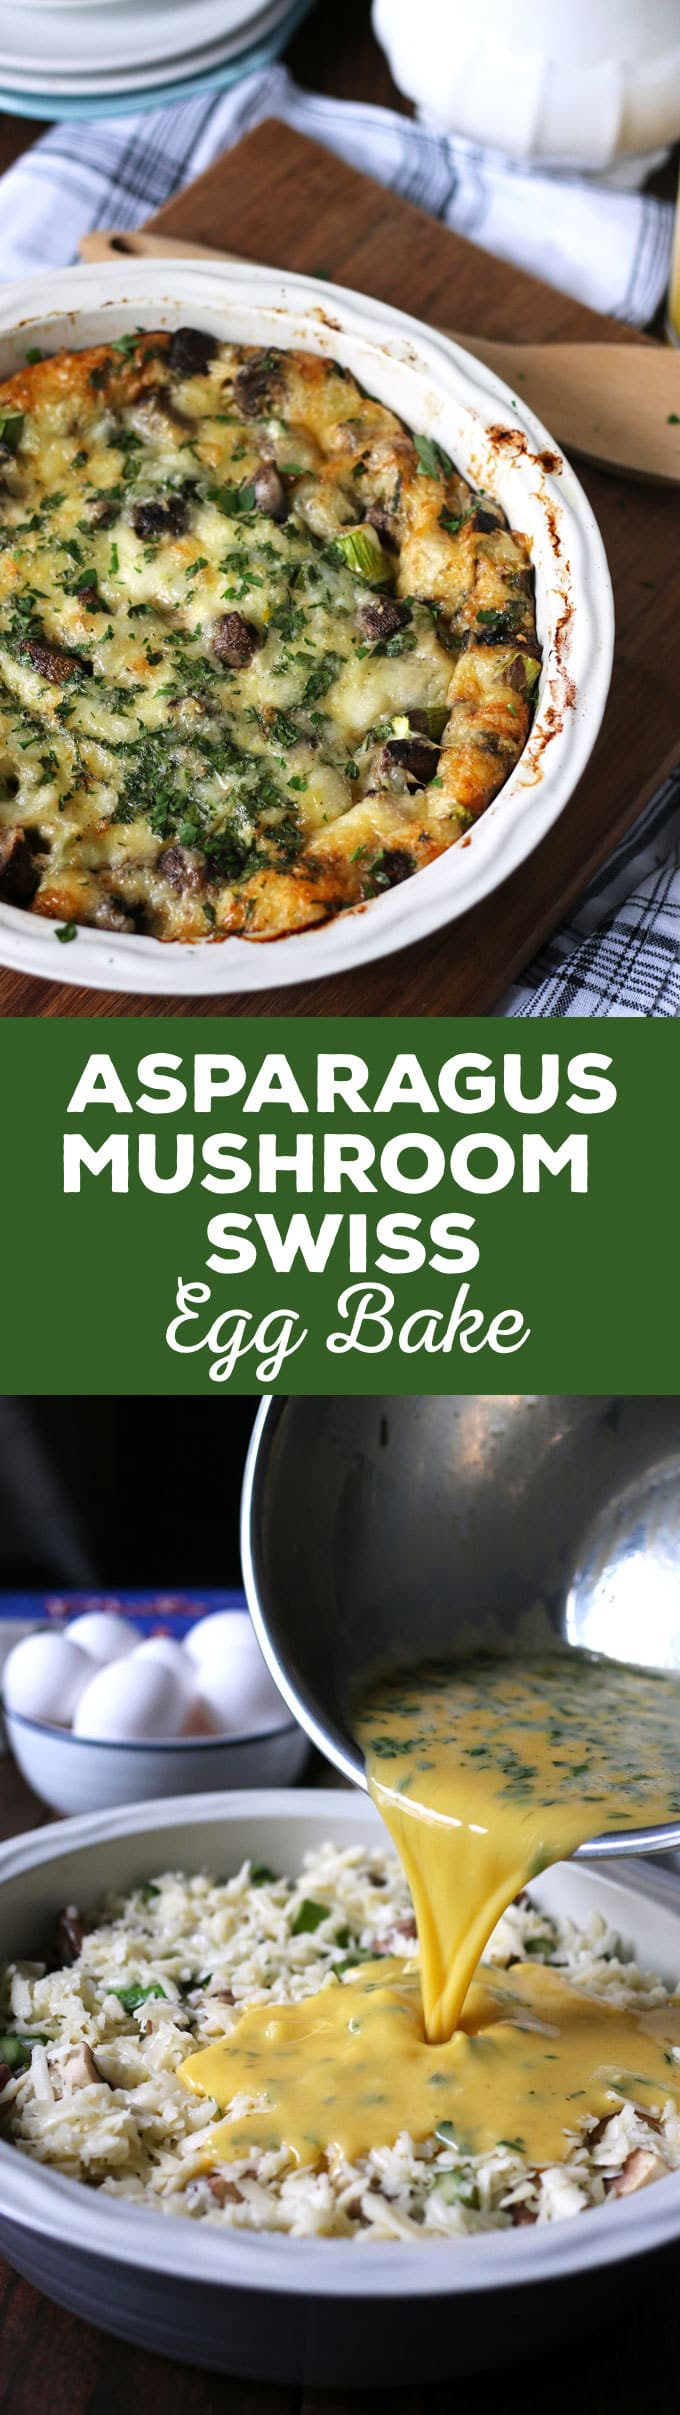 This asparagus mushroom swiss egg bake is perfect for brunch or breakfast! It can be prepared overnight and most of the cooking is done in the oven. Consider making this easy recipe your go to Mother's Day recipe! | honeyandbirch.com